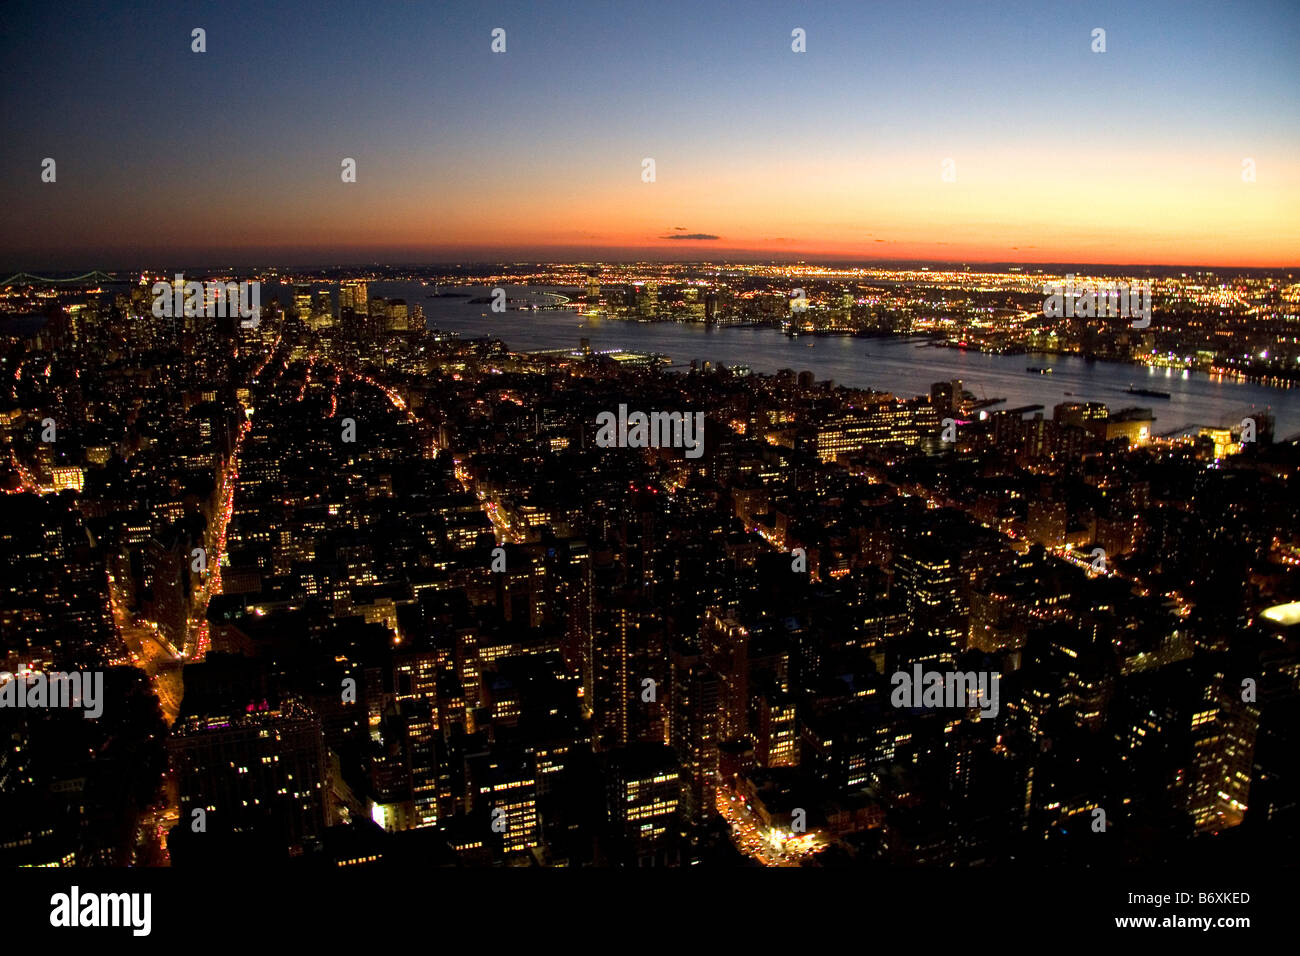 Night view of New York City New York USA - Stock Image